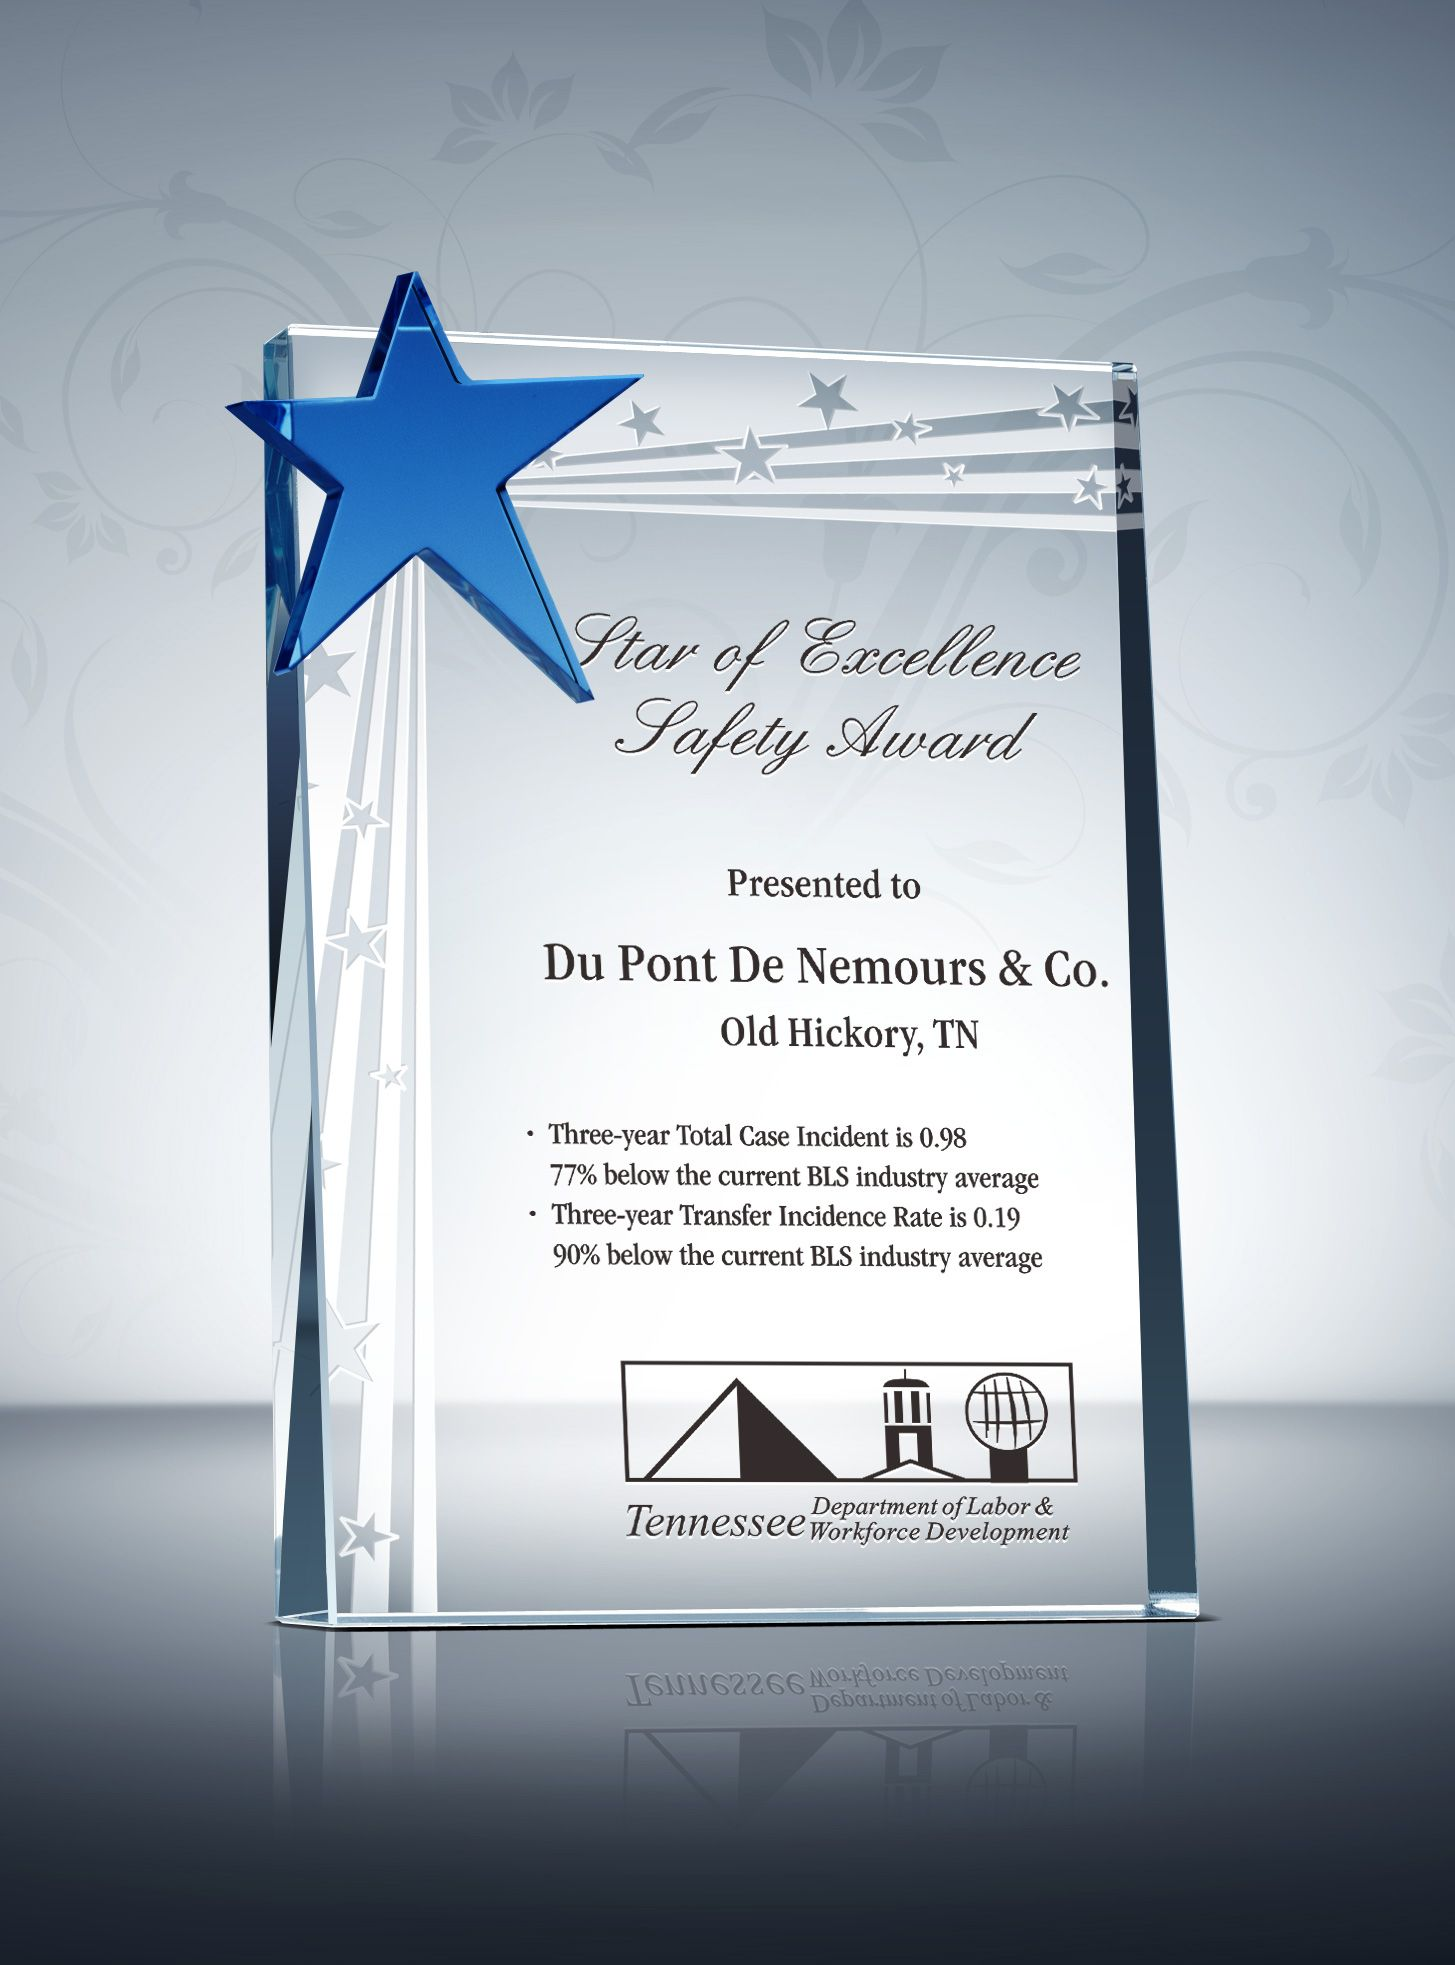 samples of recognition awards